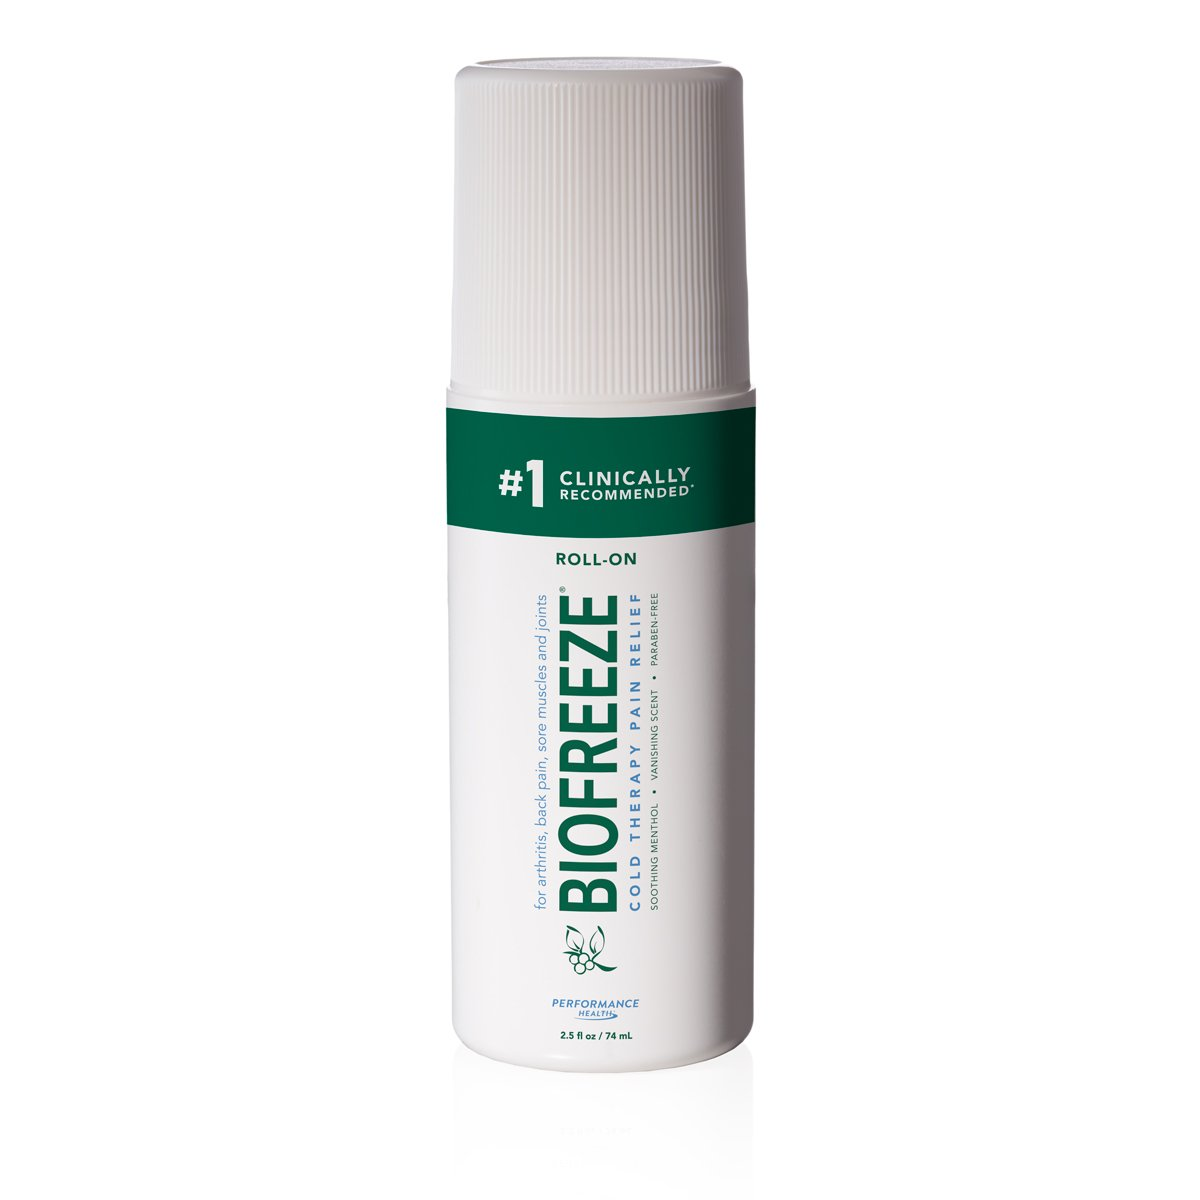 Biofreeze Pain Reliever Gel for Muscle, Joint, and Arthritis Pain, Cooling Topical Analgesic Cream, NSAID Free Pain Relief Works Like Ice Pack, 2.5 oz. Roll-On, Original Green Formula, 4% Menthol